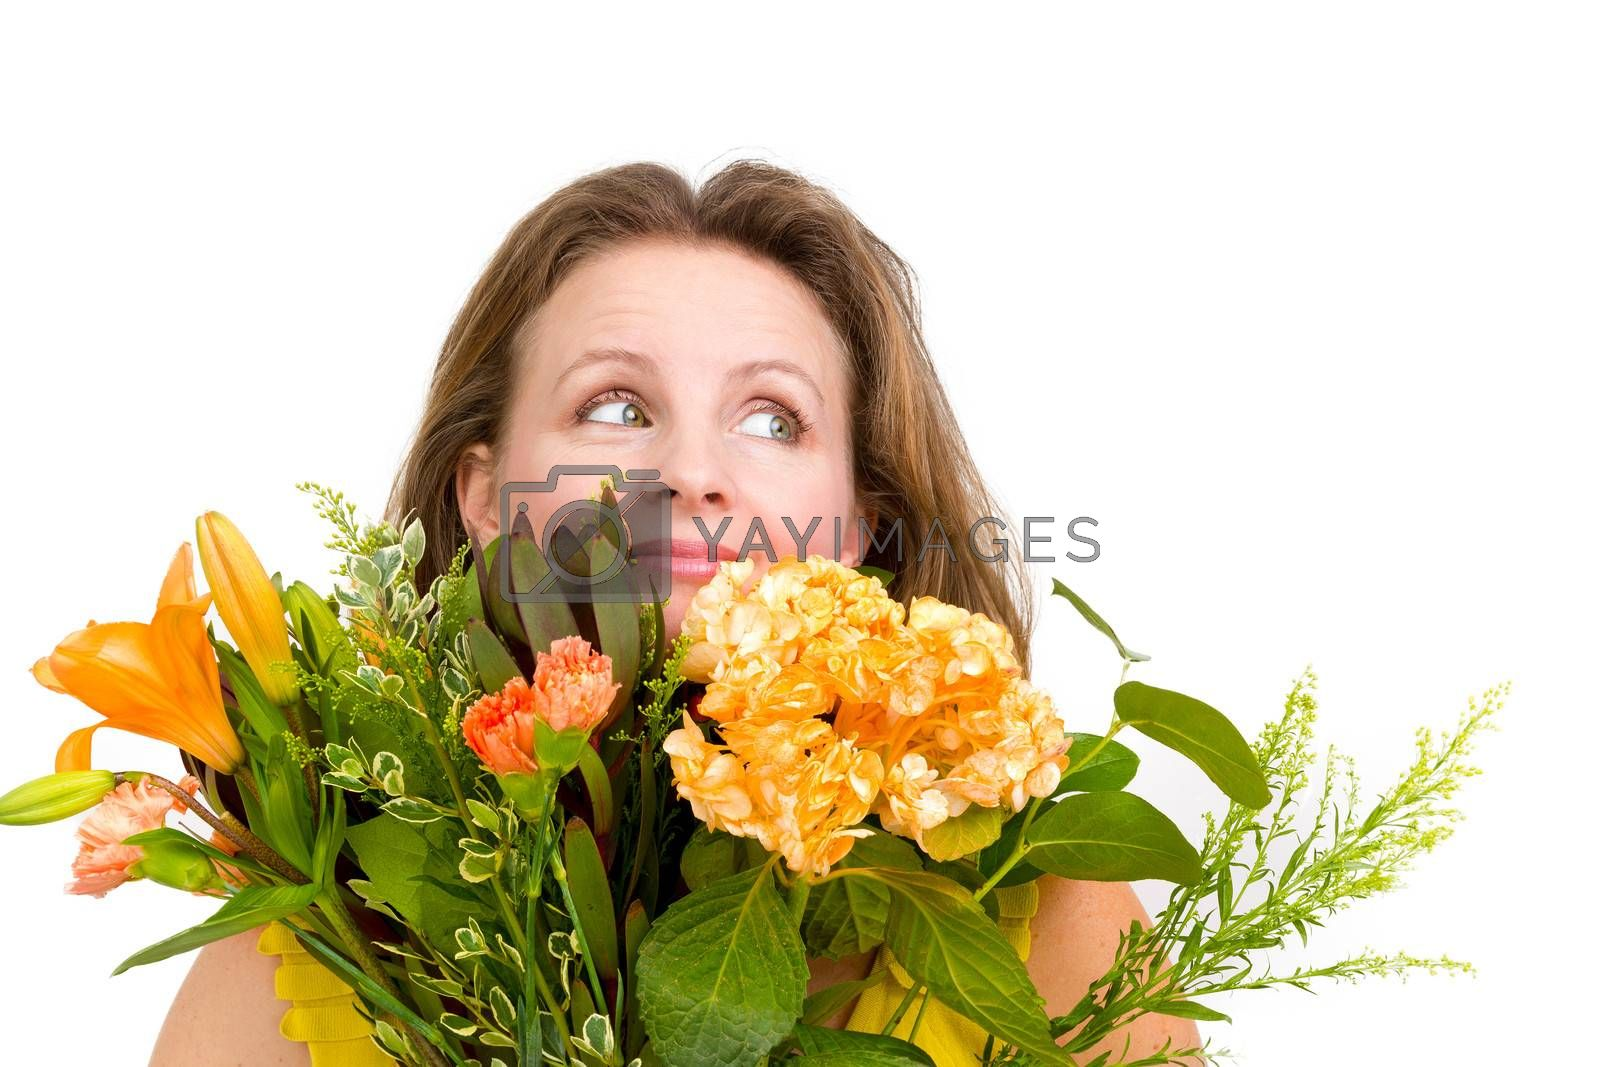 Happy woman looking up behind the flower  bouquet expressing her positive feelings genuinely